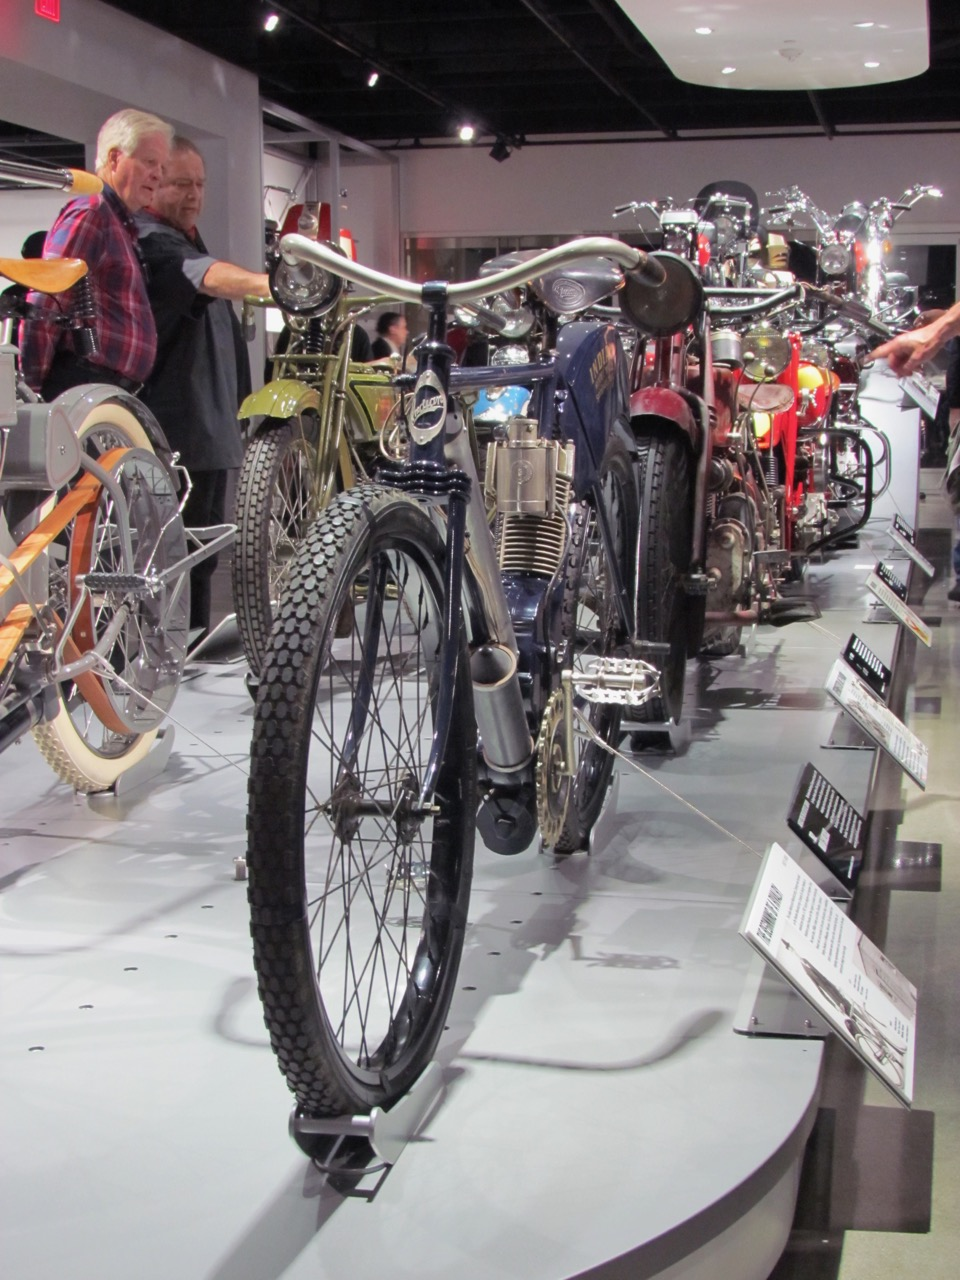 More than two dozen motorcycles are included in the exhibit